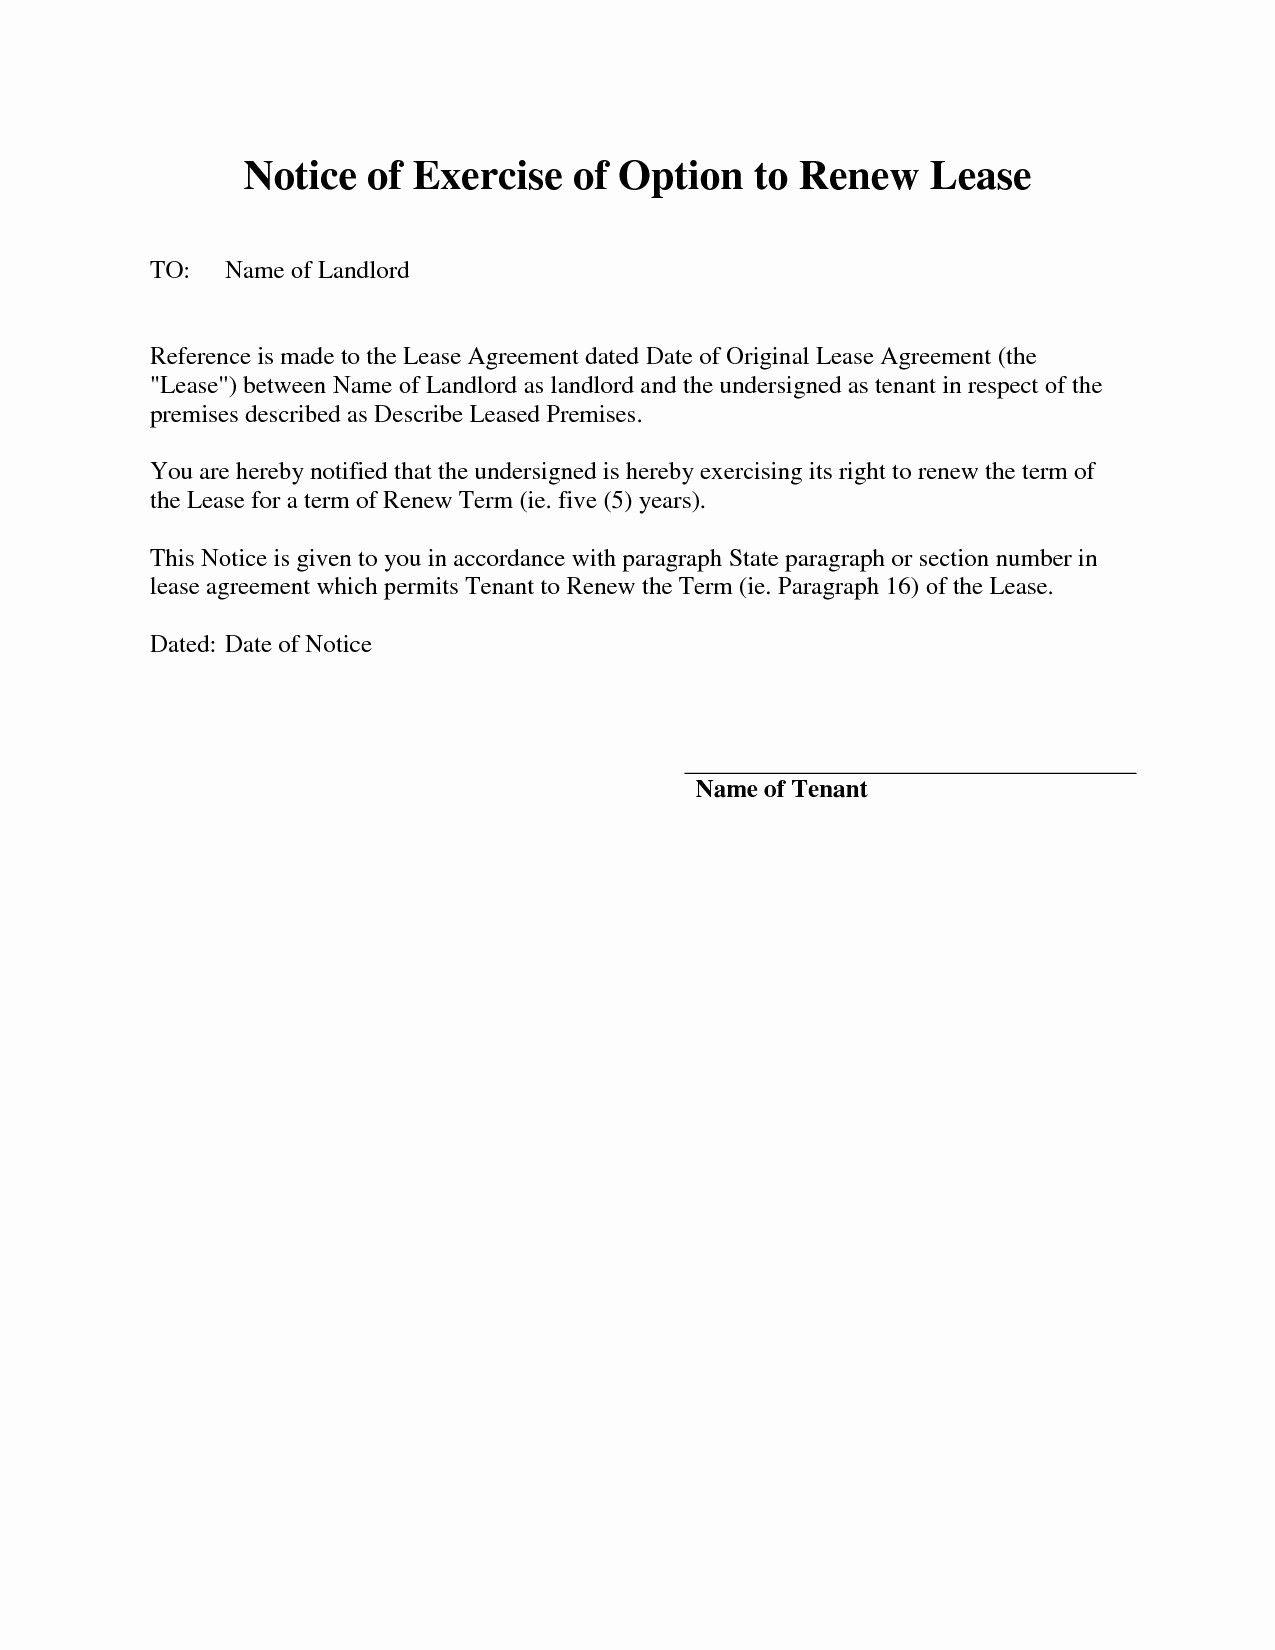 Option to Extend Lease Letter Elegant Letter Intent to Renew Lease Template Refrence Exercise